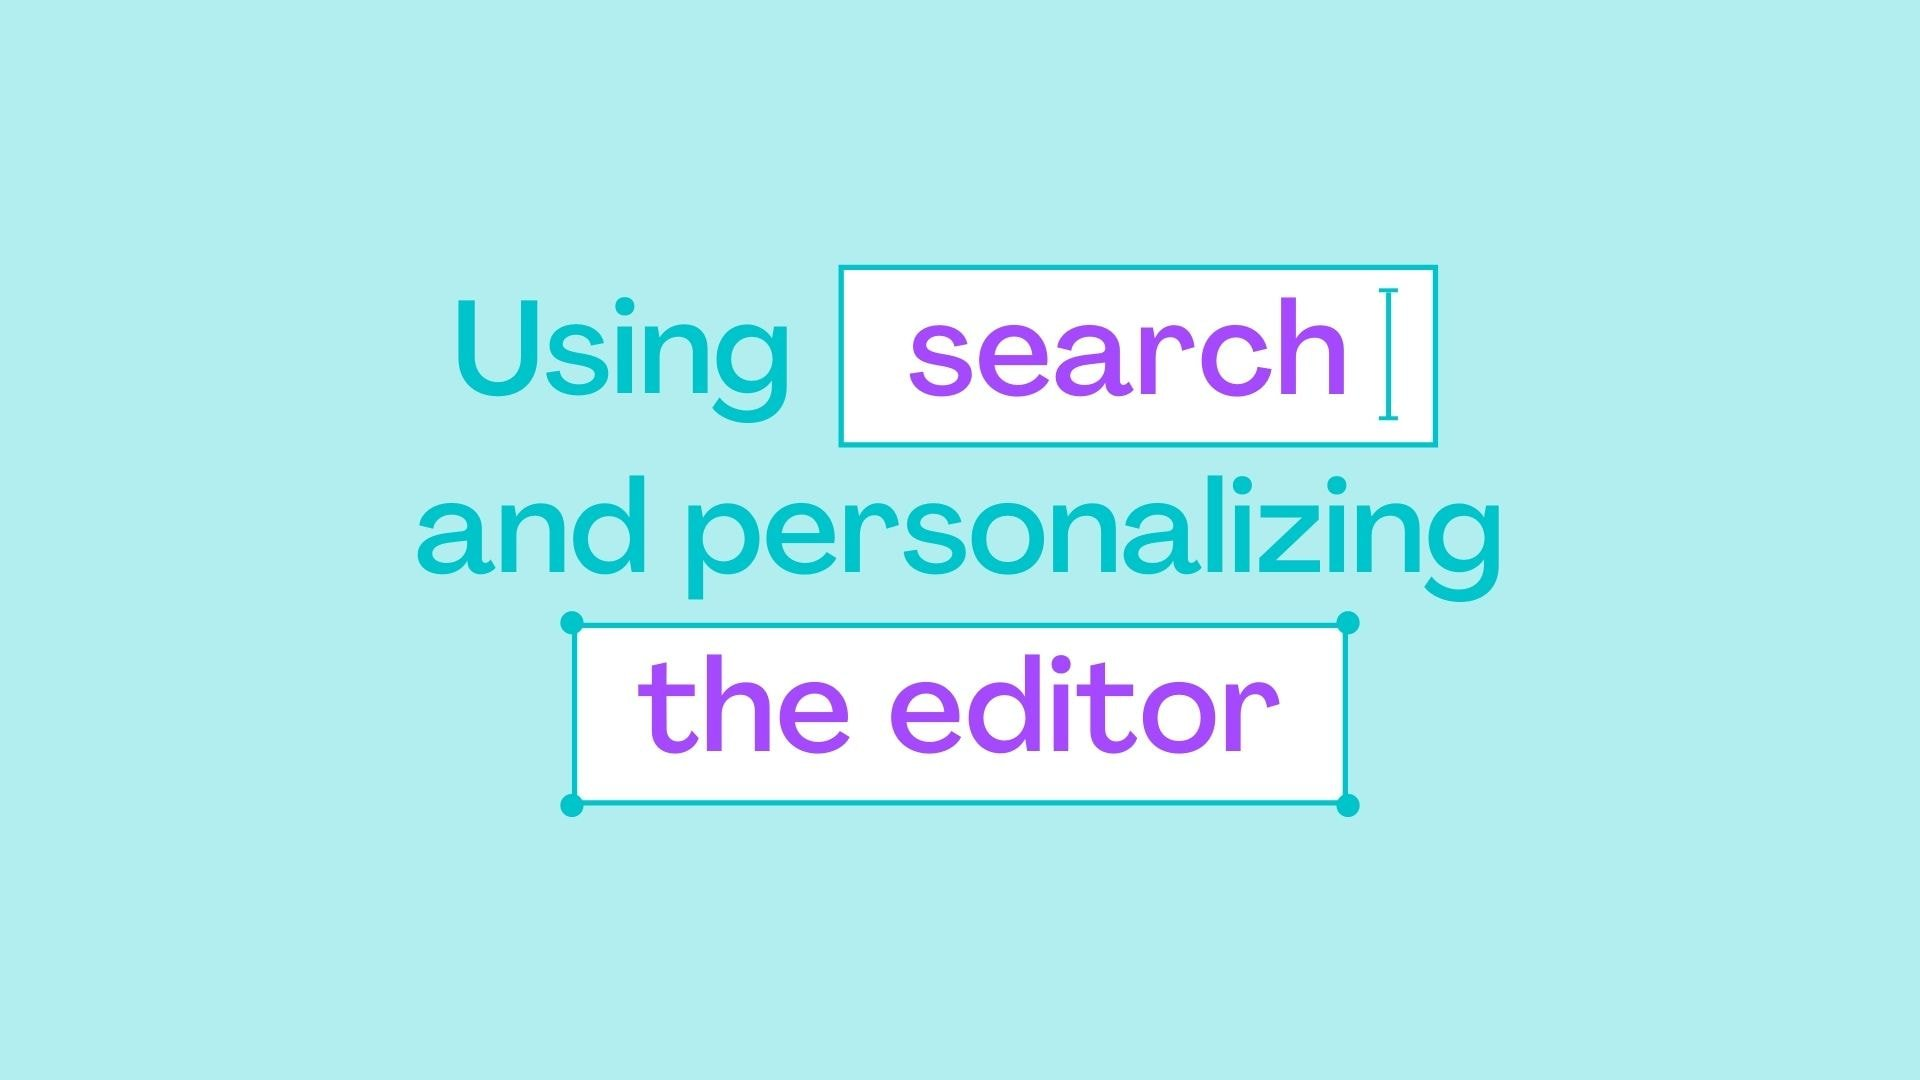 1.3 Using search & personalizing the editor